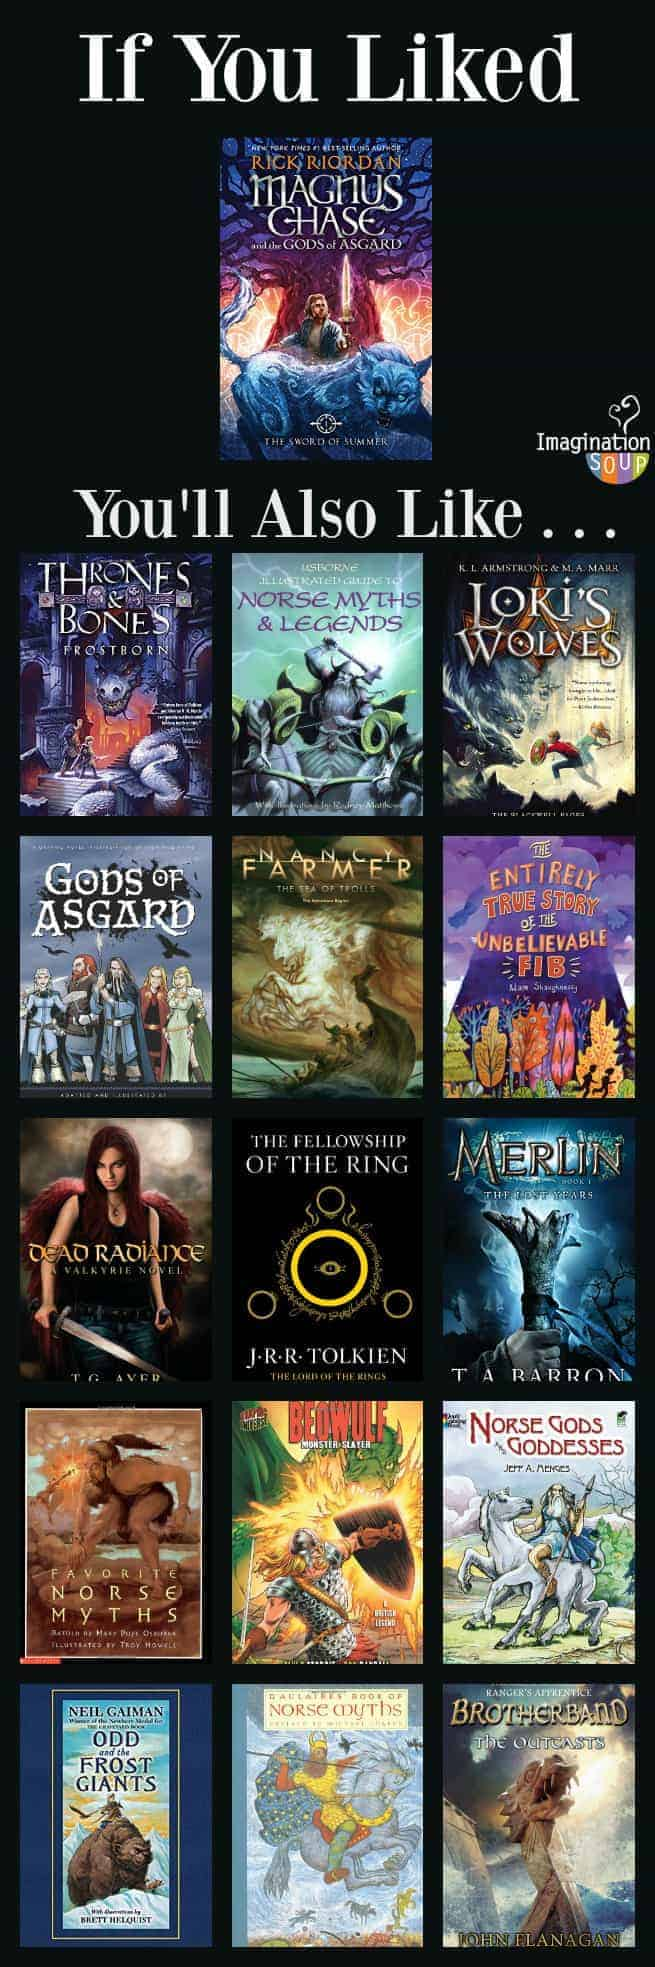 nordic norse mythology myths kids if you liked Magnus Chase The Sword of Summer, you'll also like these Norse mythology books